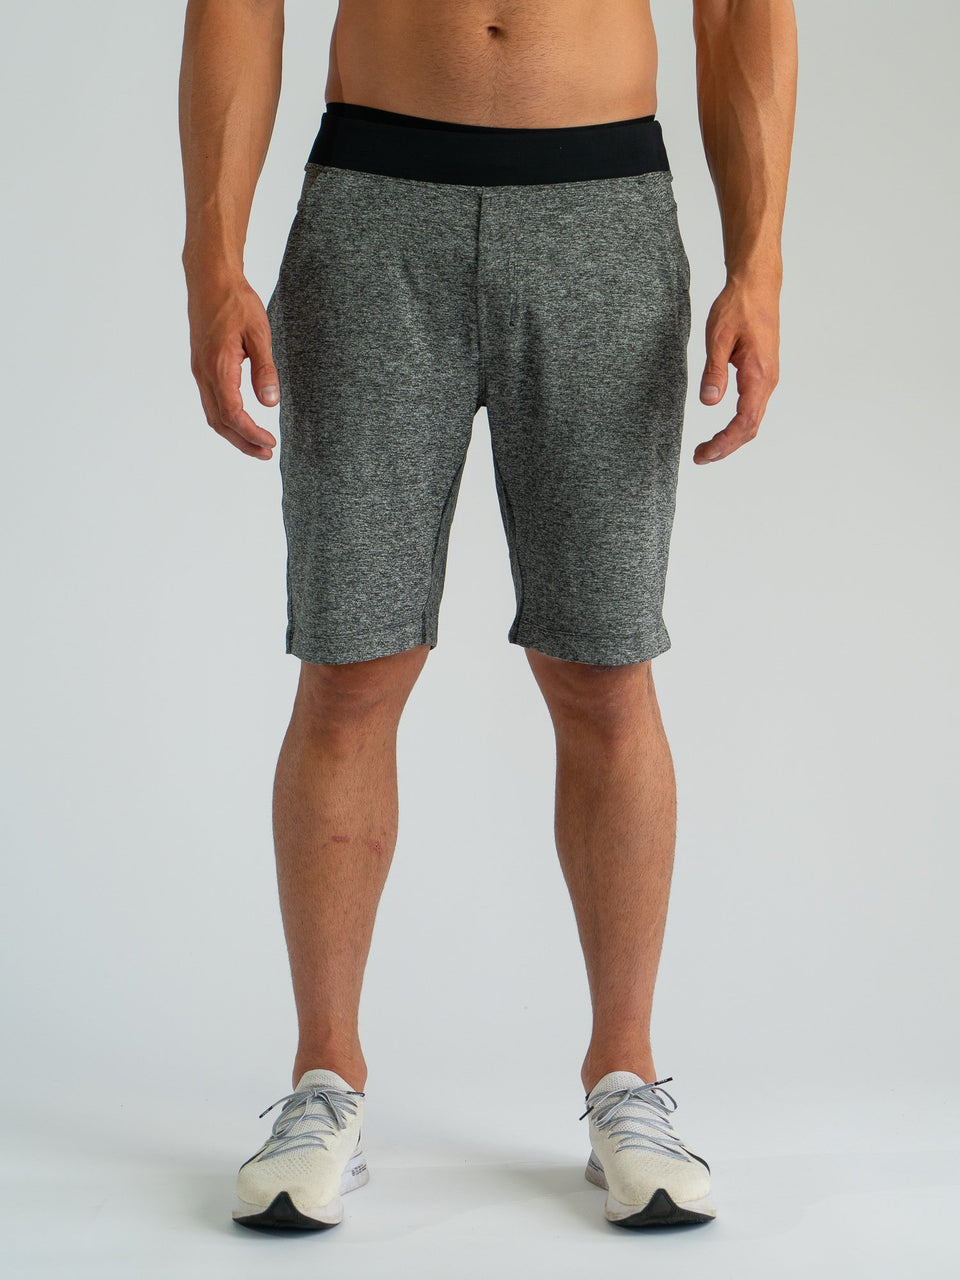 425 Short - SODO Apparel - SHORTS